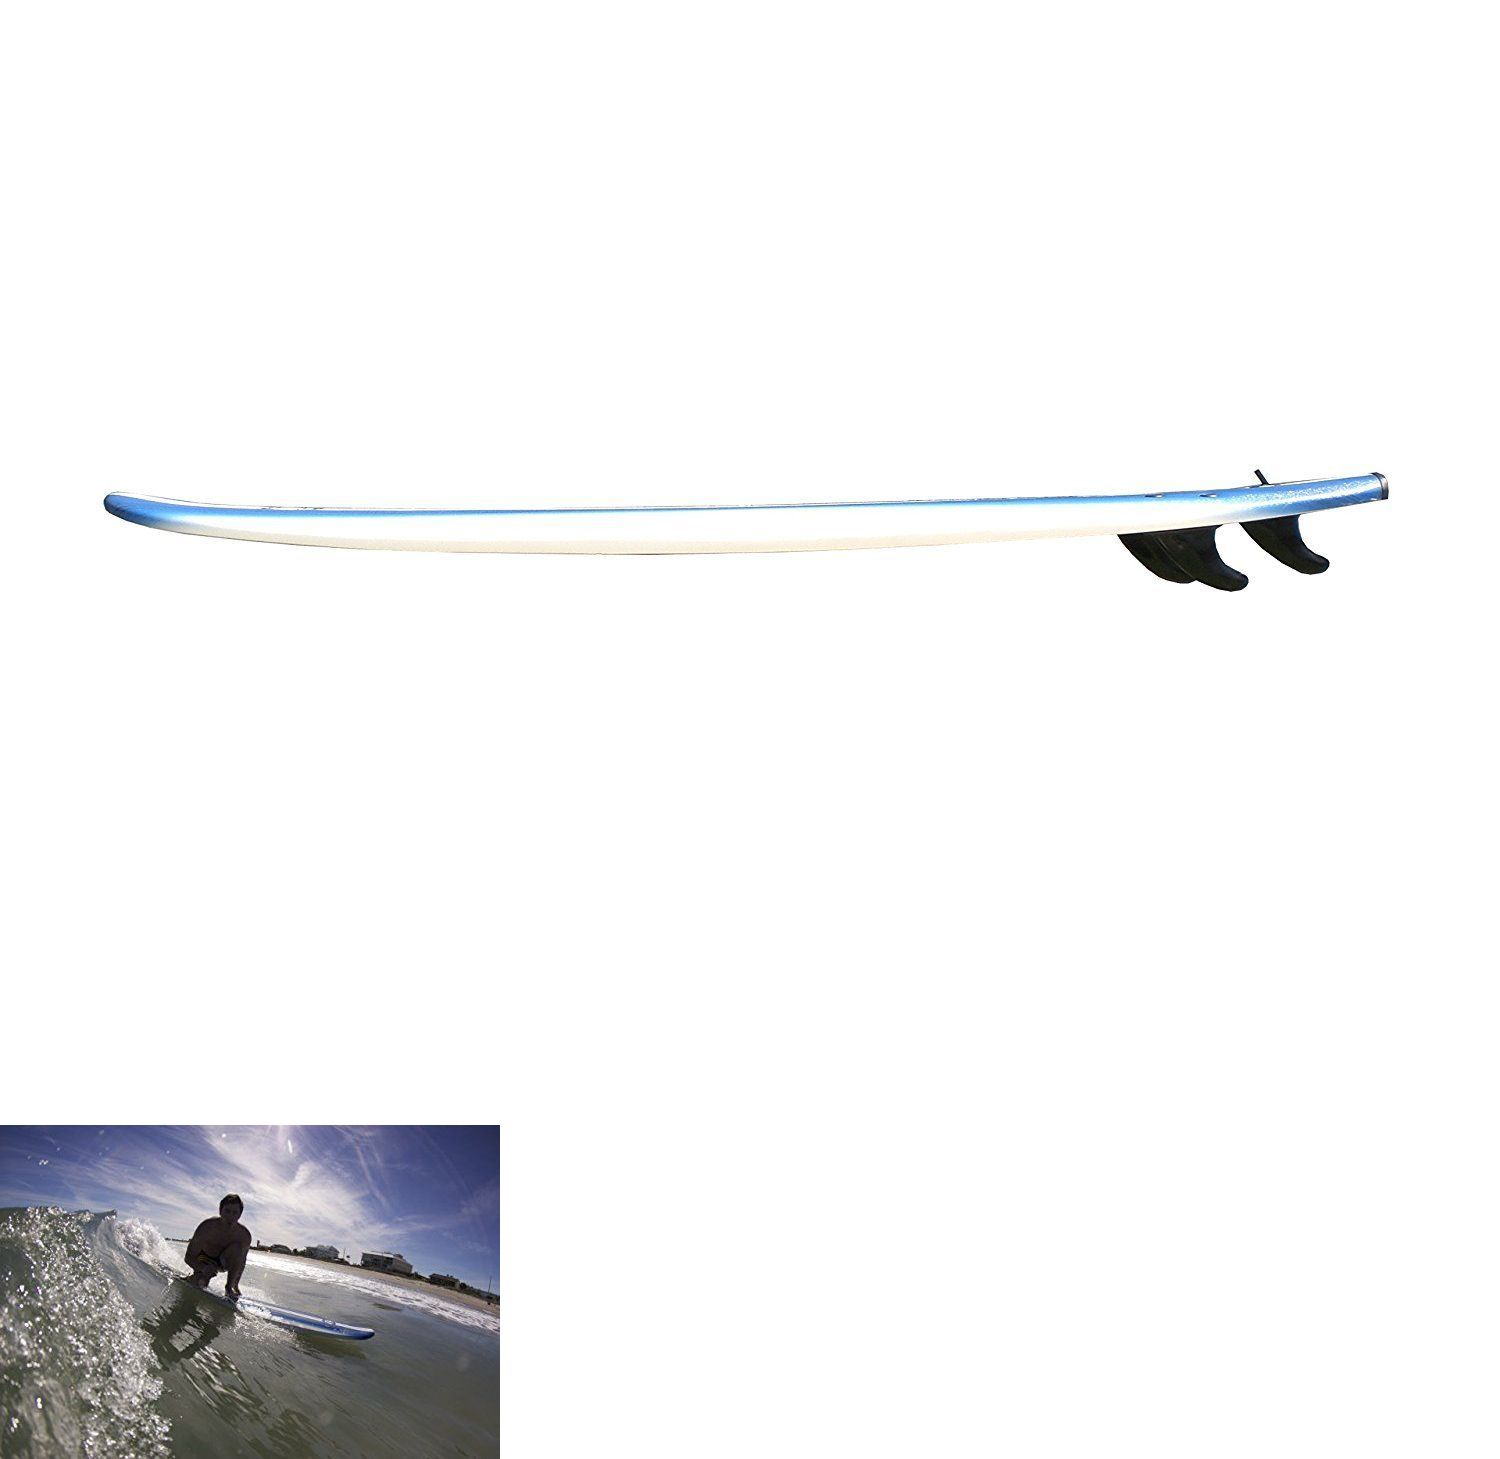 Surfboards 22710: Surfboard 8 Feet Surfing Beach Fun Playing Waves Beginners Gift Durable Stable -> BUY IT NOW ONLY: $207.65 on eBay!